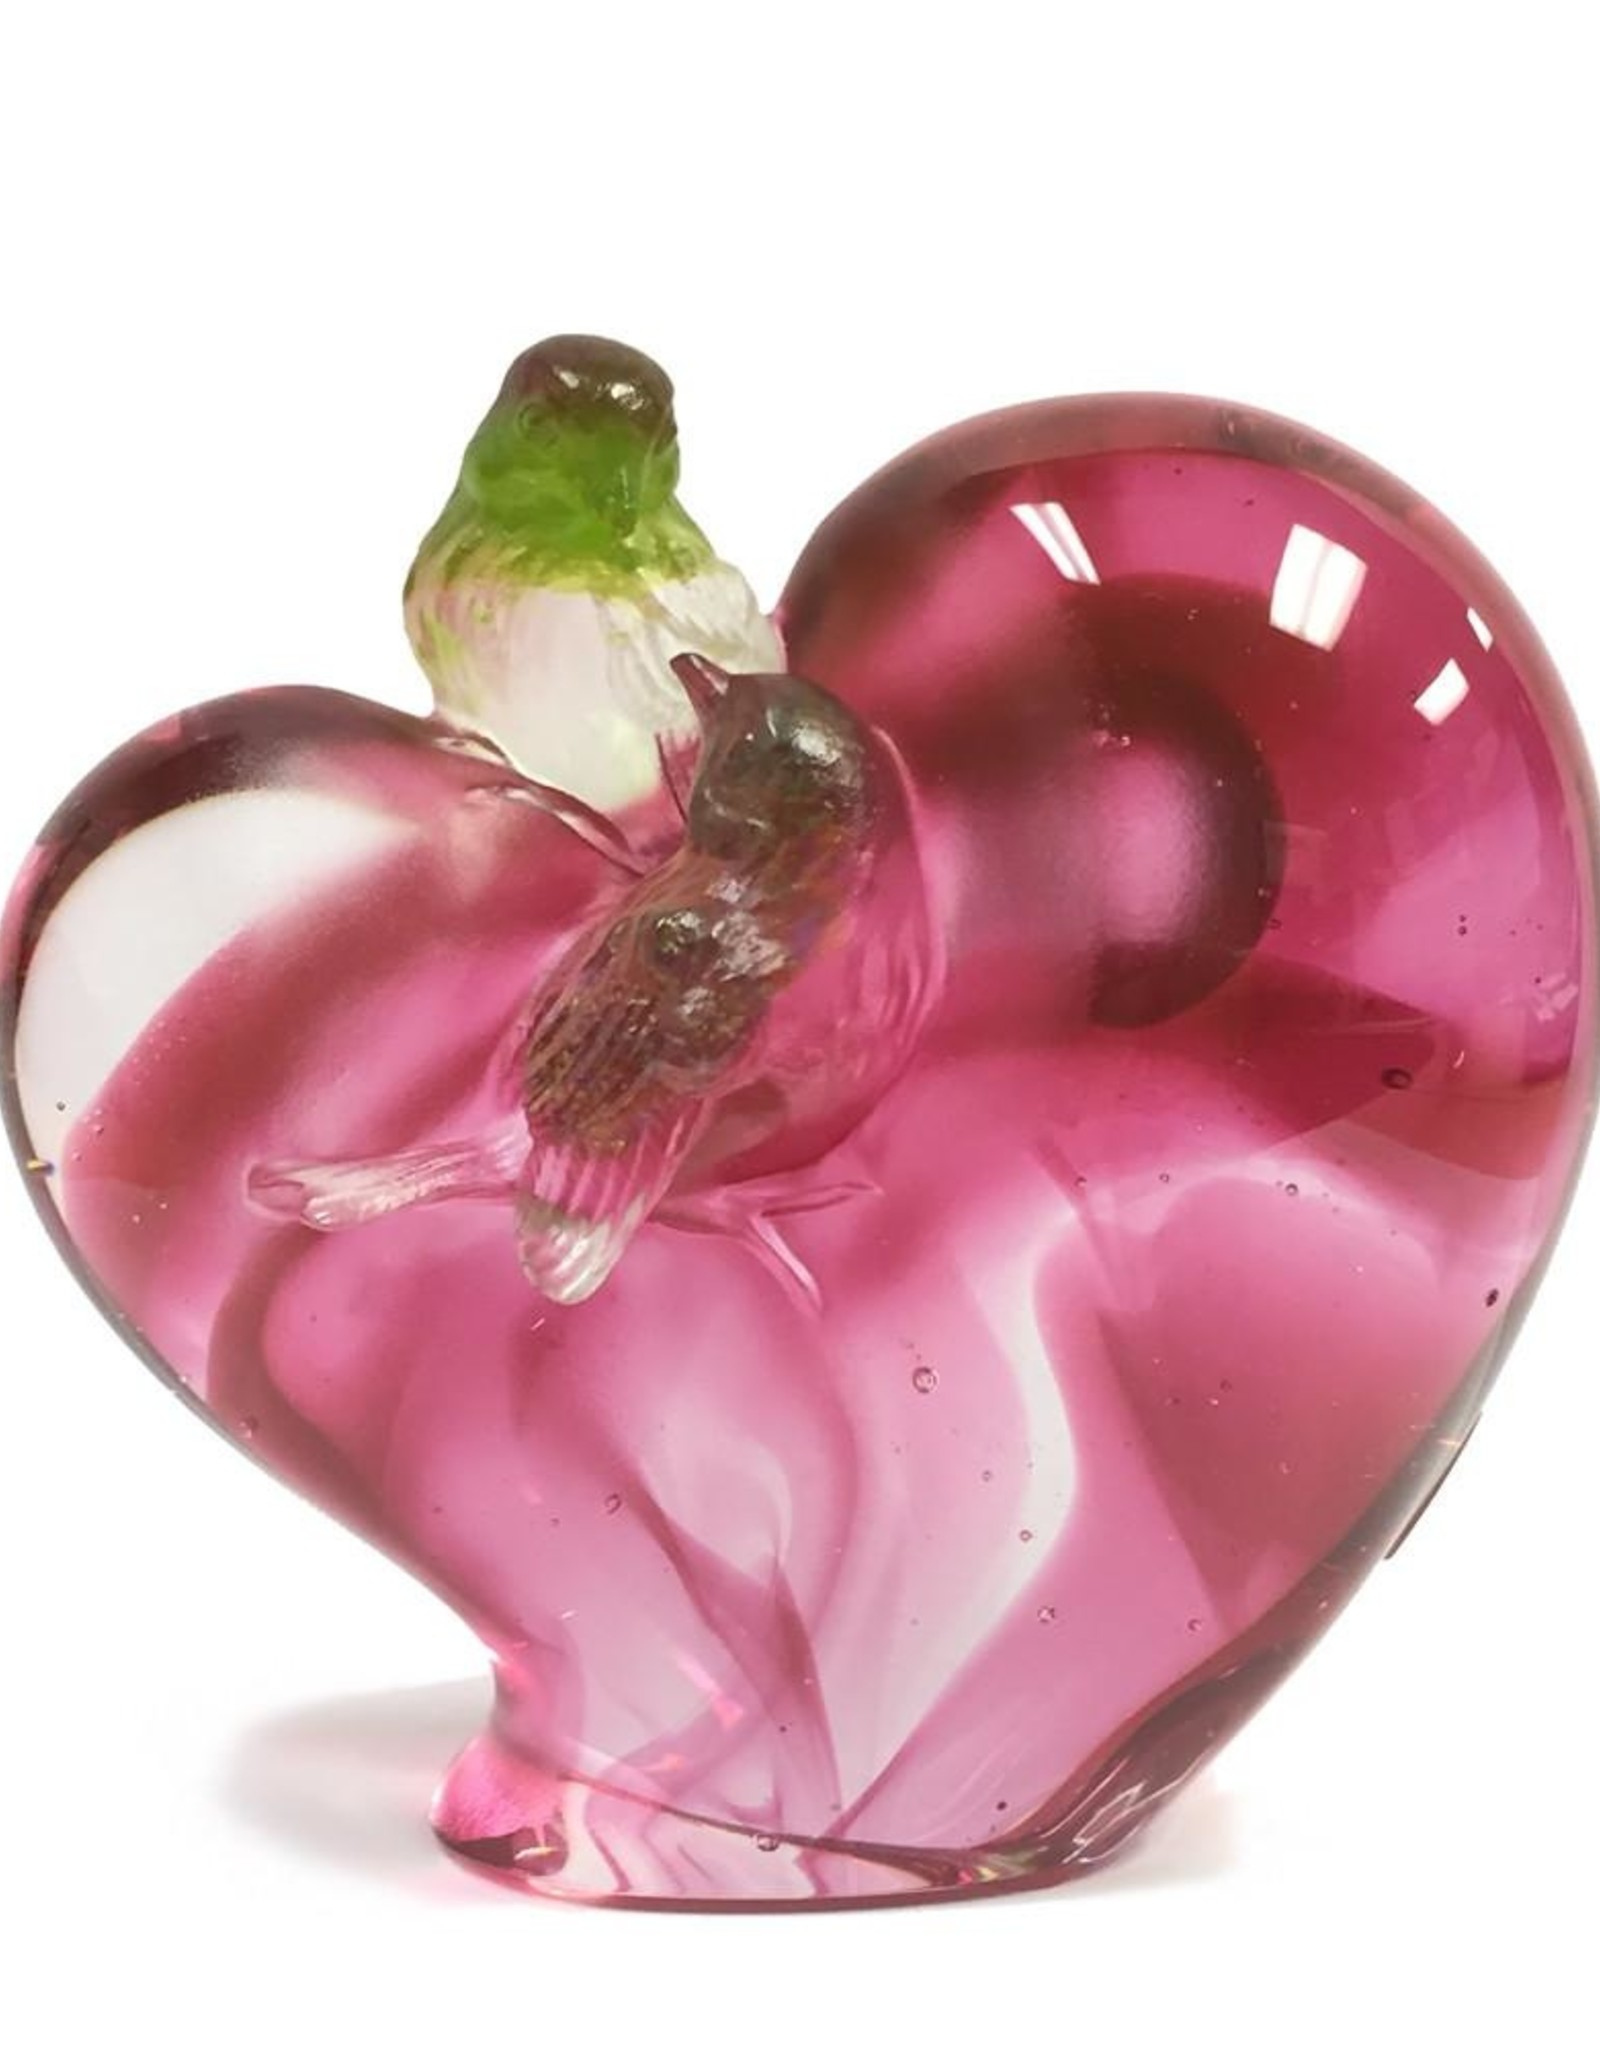 """LIULI Crystal Art Crystal """"Amorous Words"""" Birds on Heart Shape Figurine in Golden Red  (Limited Edition)"""